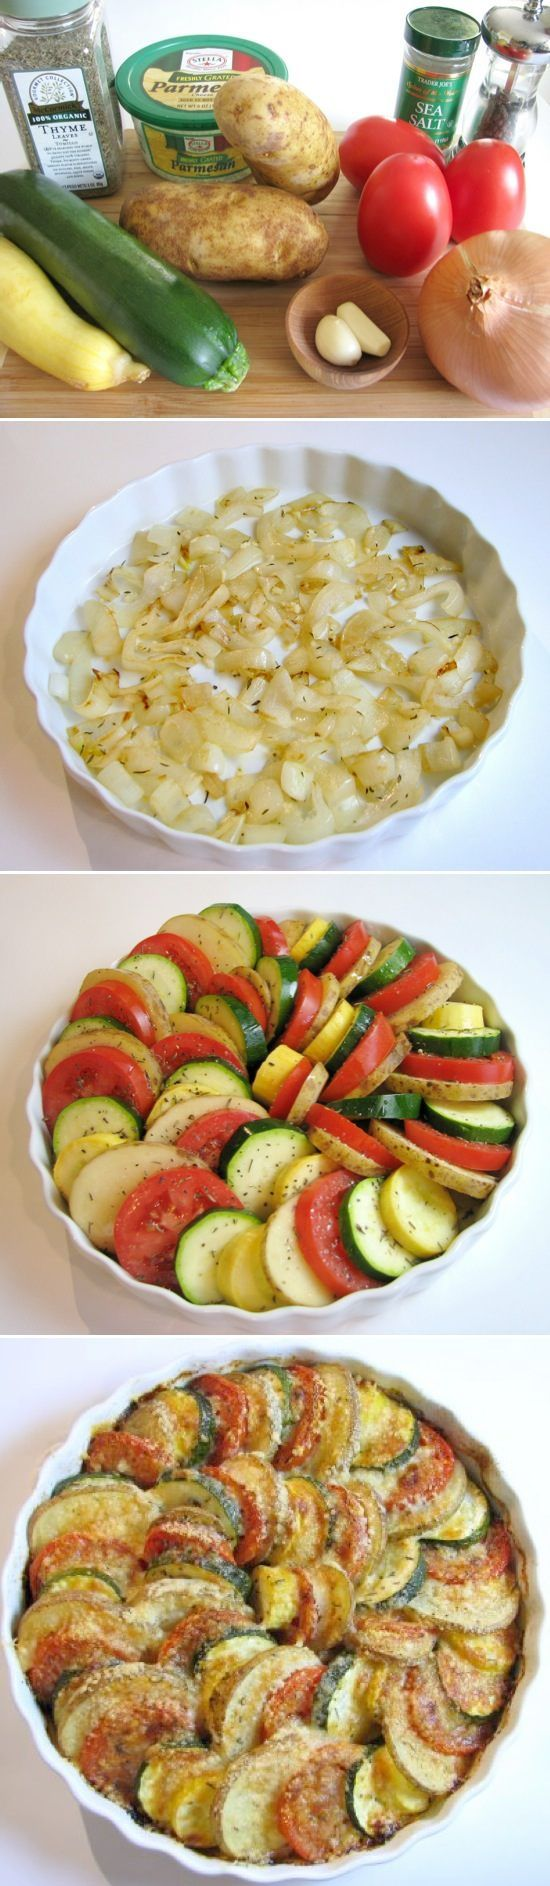 Parmesan Vegetable Spiral - A bed of onions is topped with a medley of veggies (tomatoes, potatoes, squash and zucchini) then drizzled w EVOO, sprinkled w Parmesan cheese and roasted to perfection. Gorgeous new way to eat your veggies!